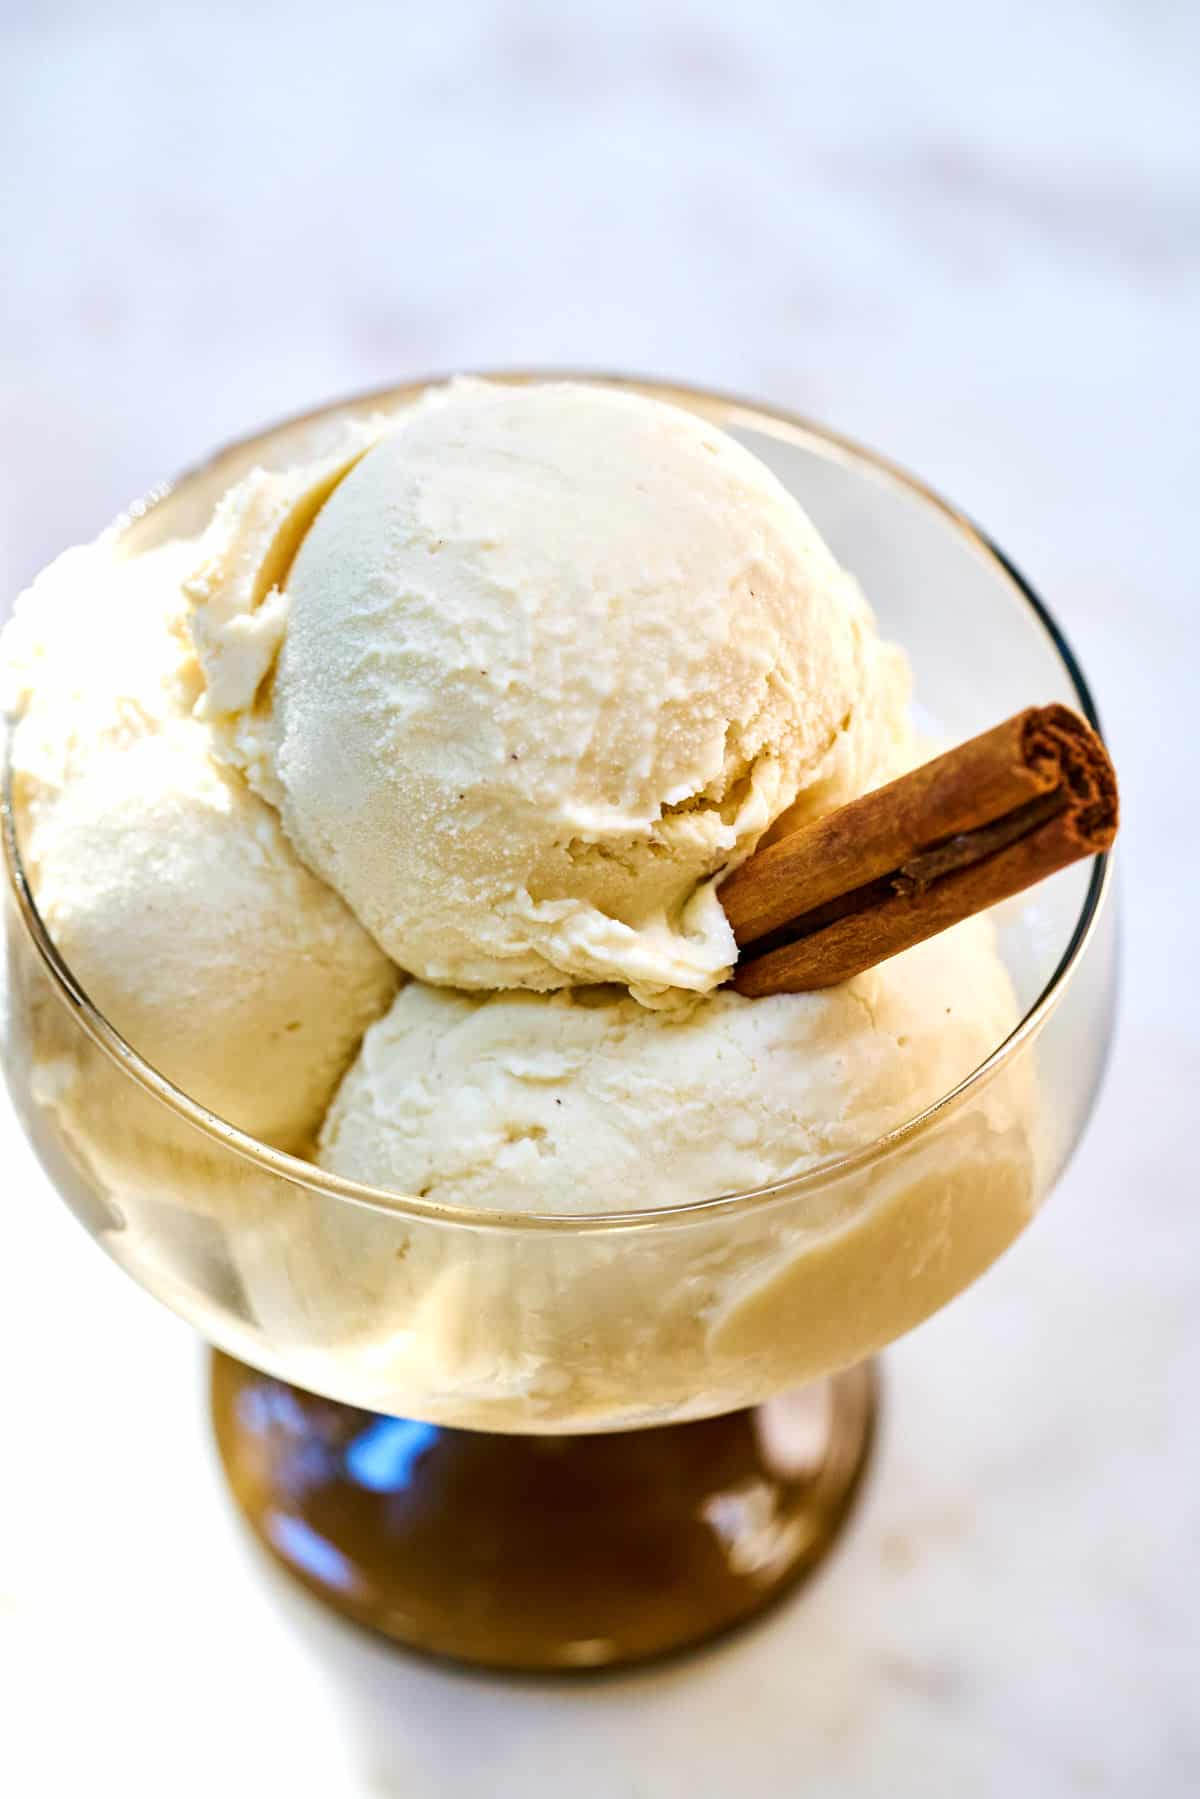 Three scoops of ice cream in a pedestal glass with a stick of cinnamon.